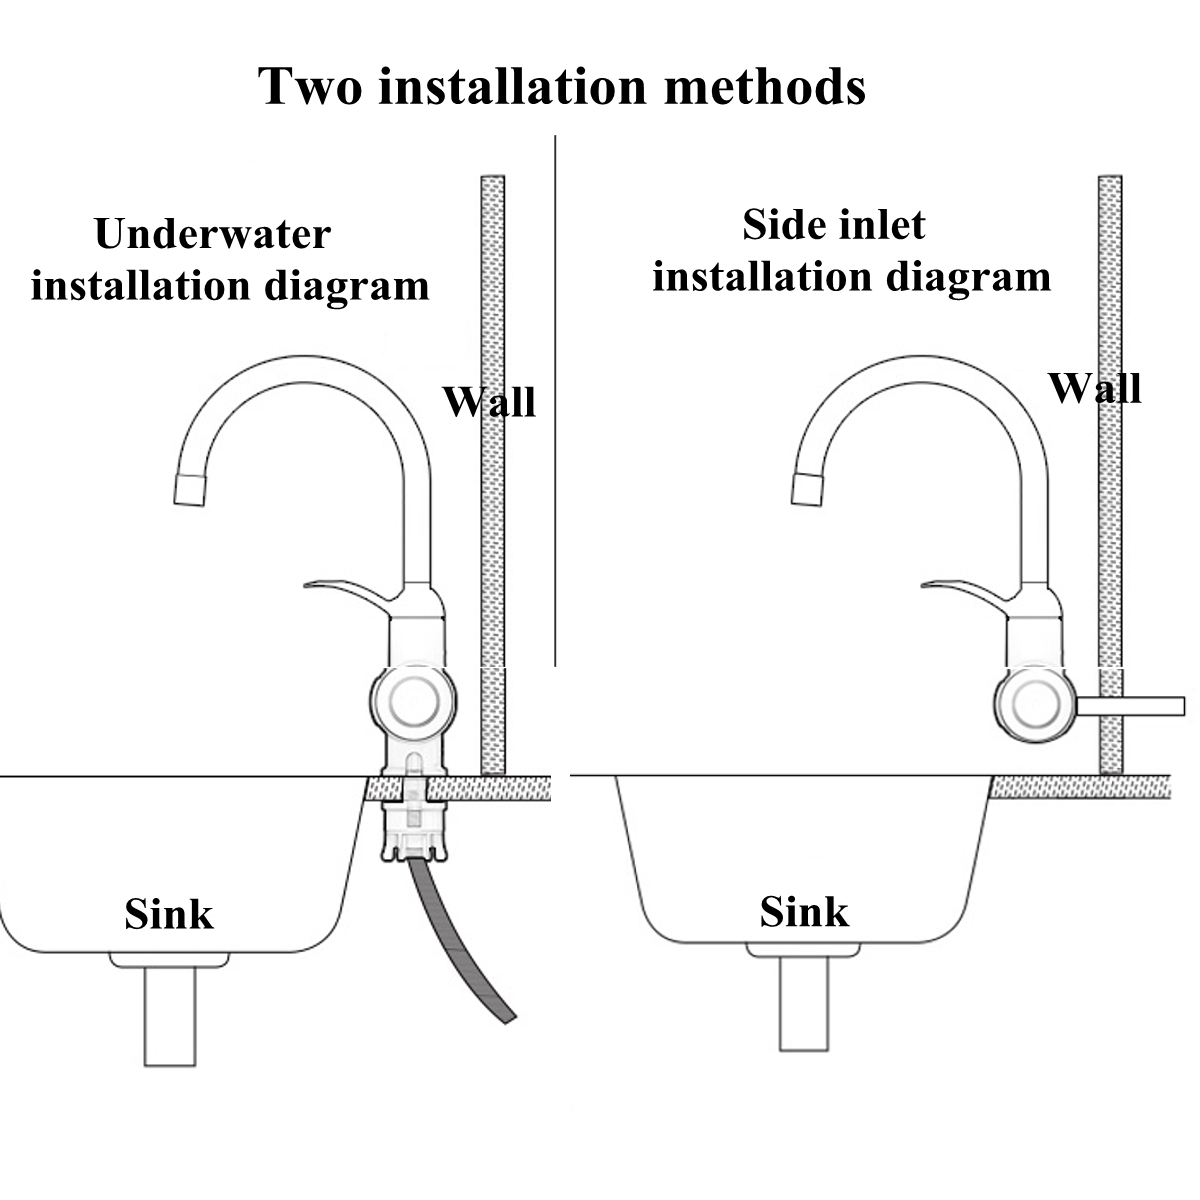 50 Instant Hot Water Heater Piping Diagram